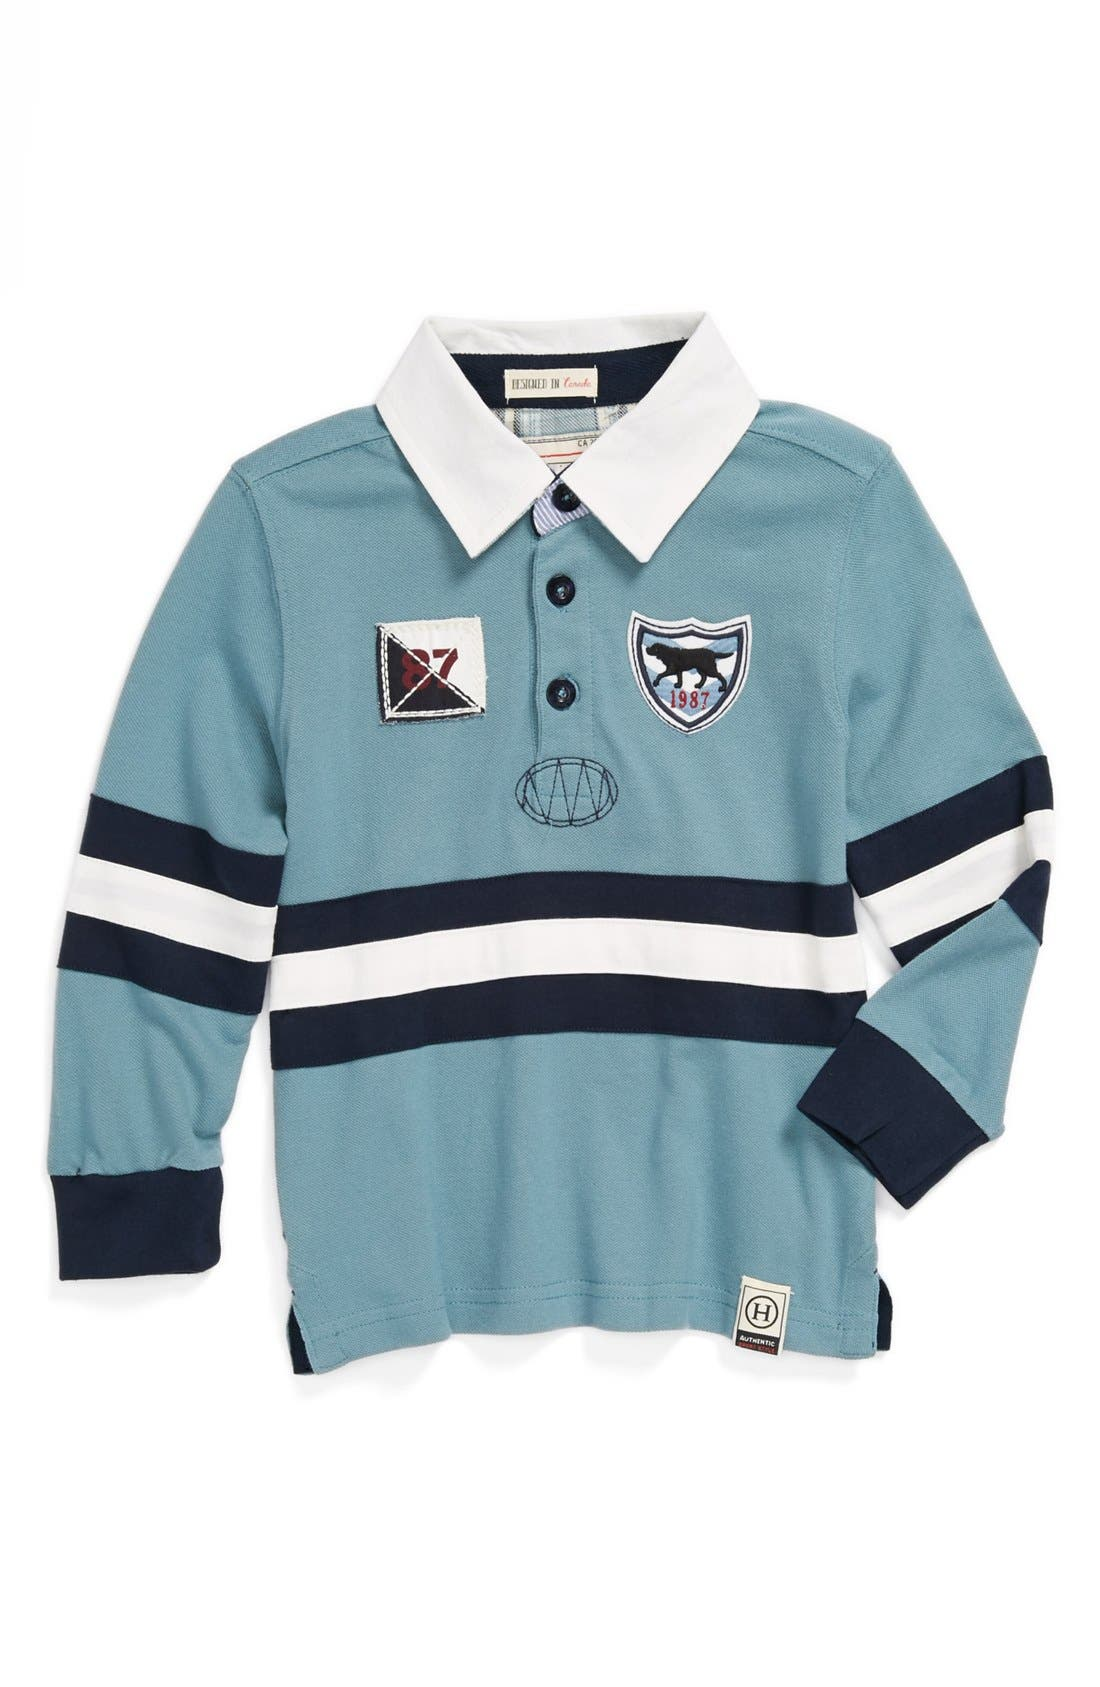 Main Image - Hatley 'Labs' Rugby Shirt (Toddler Boys)